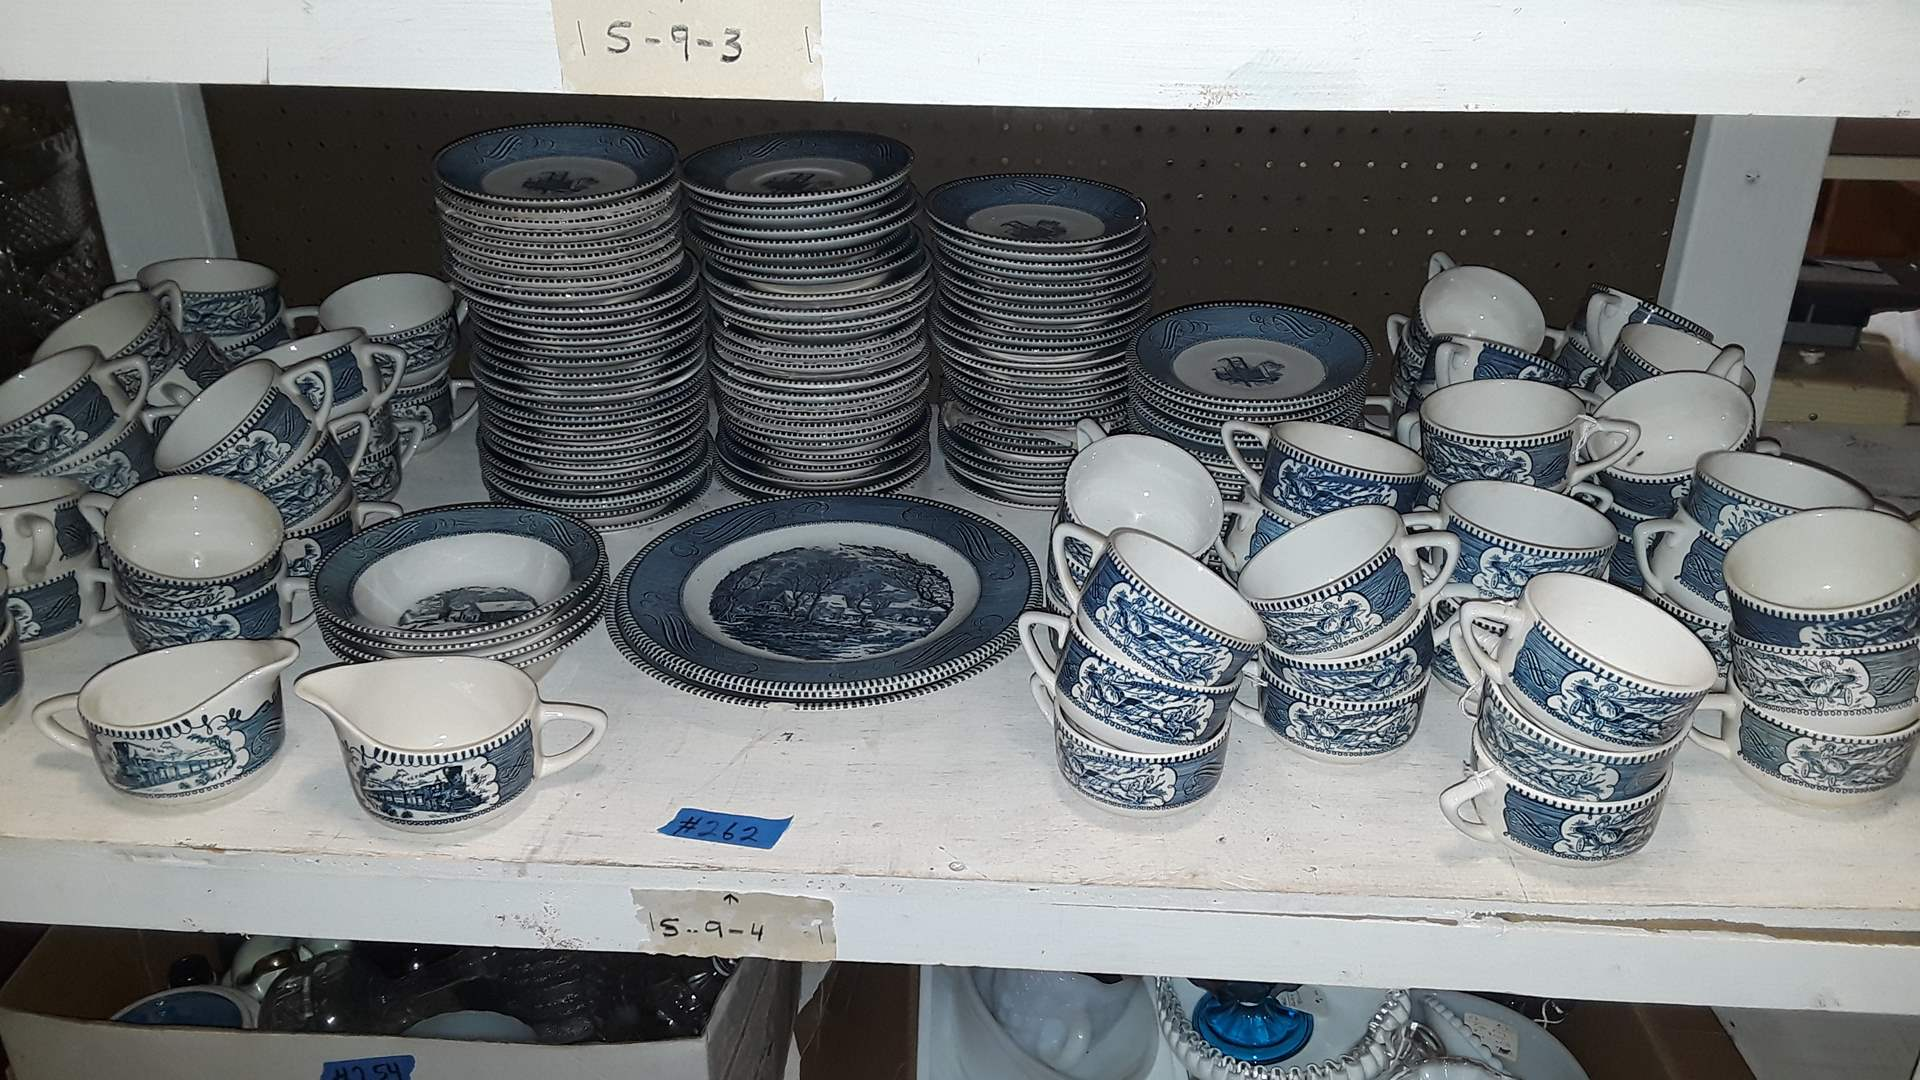 Lot # 262 VINTAGE CURRIER AND IVES DINNERWARE, GOOD CONDITION, 1 CHIPPED PLATE